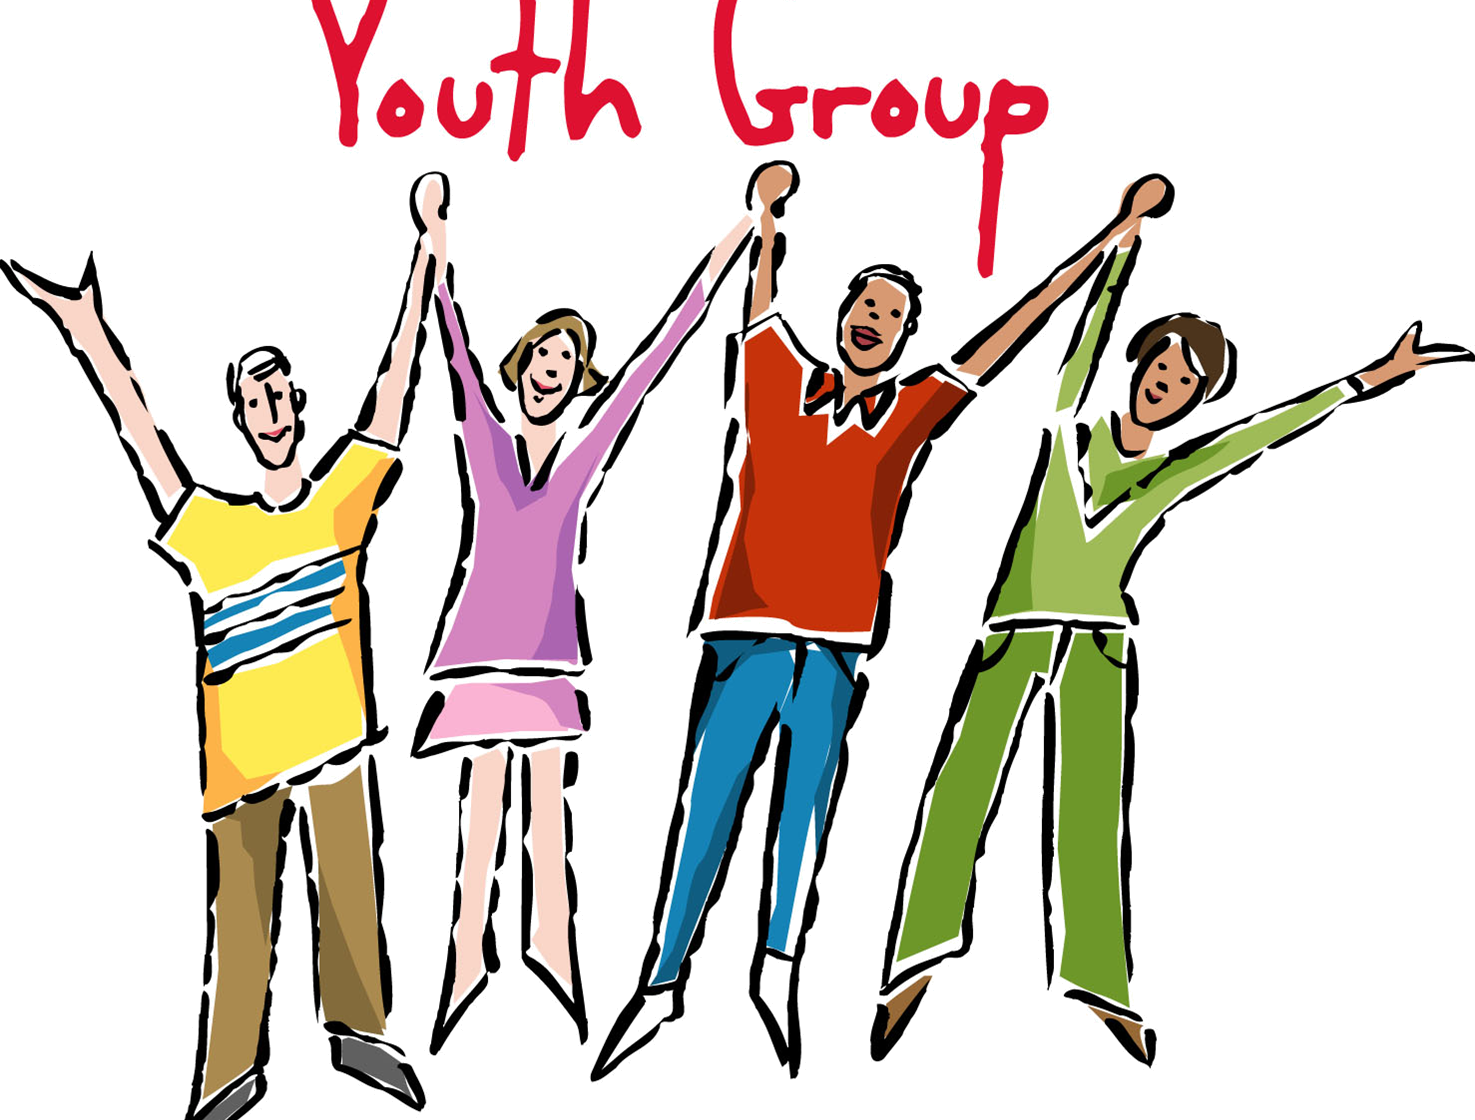 . Dinner clipart youth group